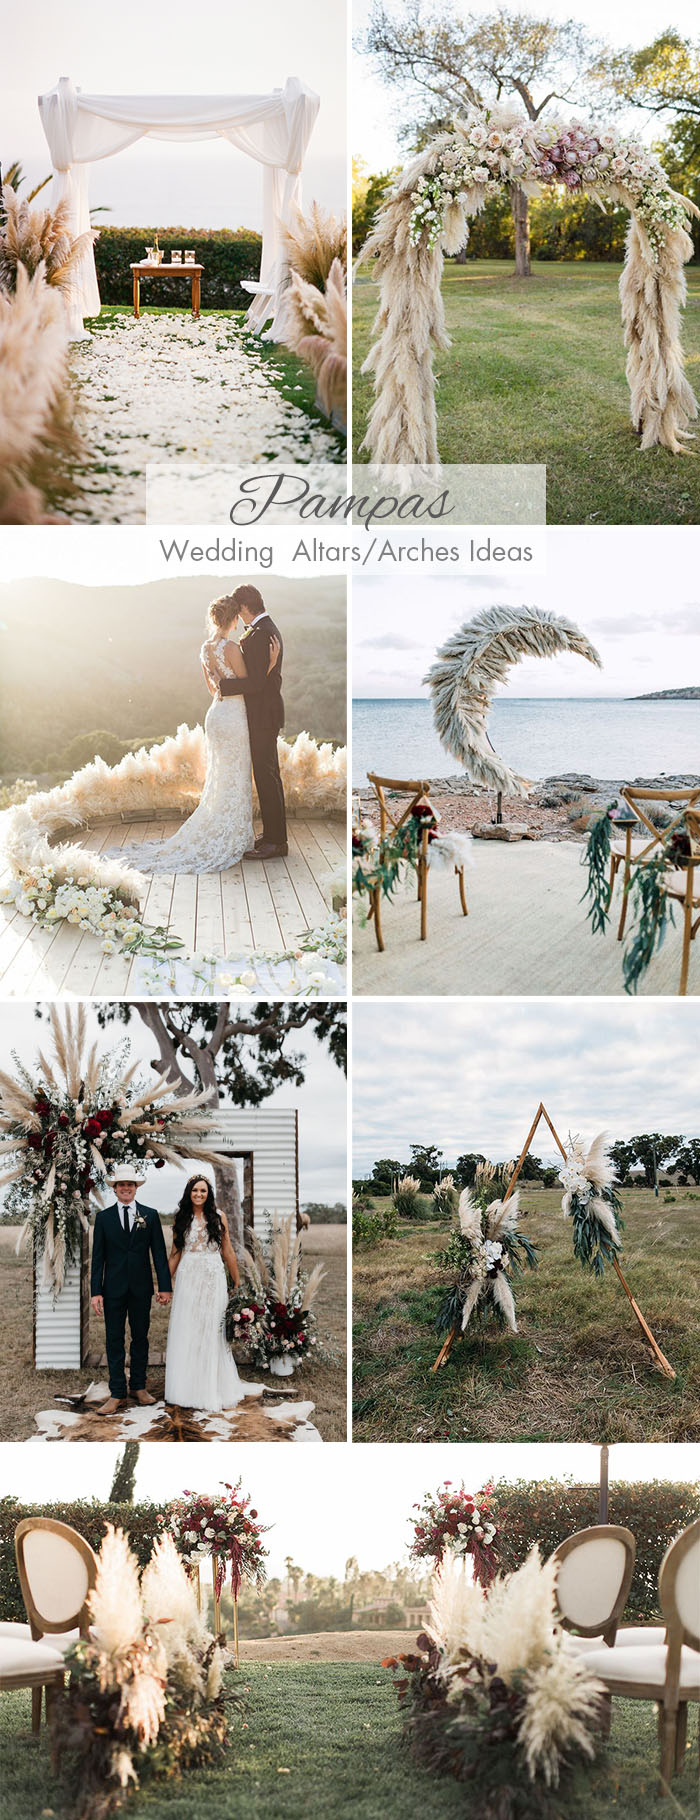 Trending: 20 Coolest Ideas to Feature Pampas Grass in Your Wedding